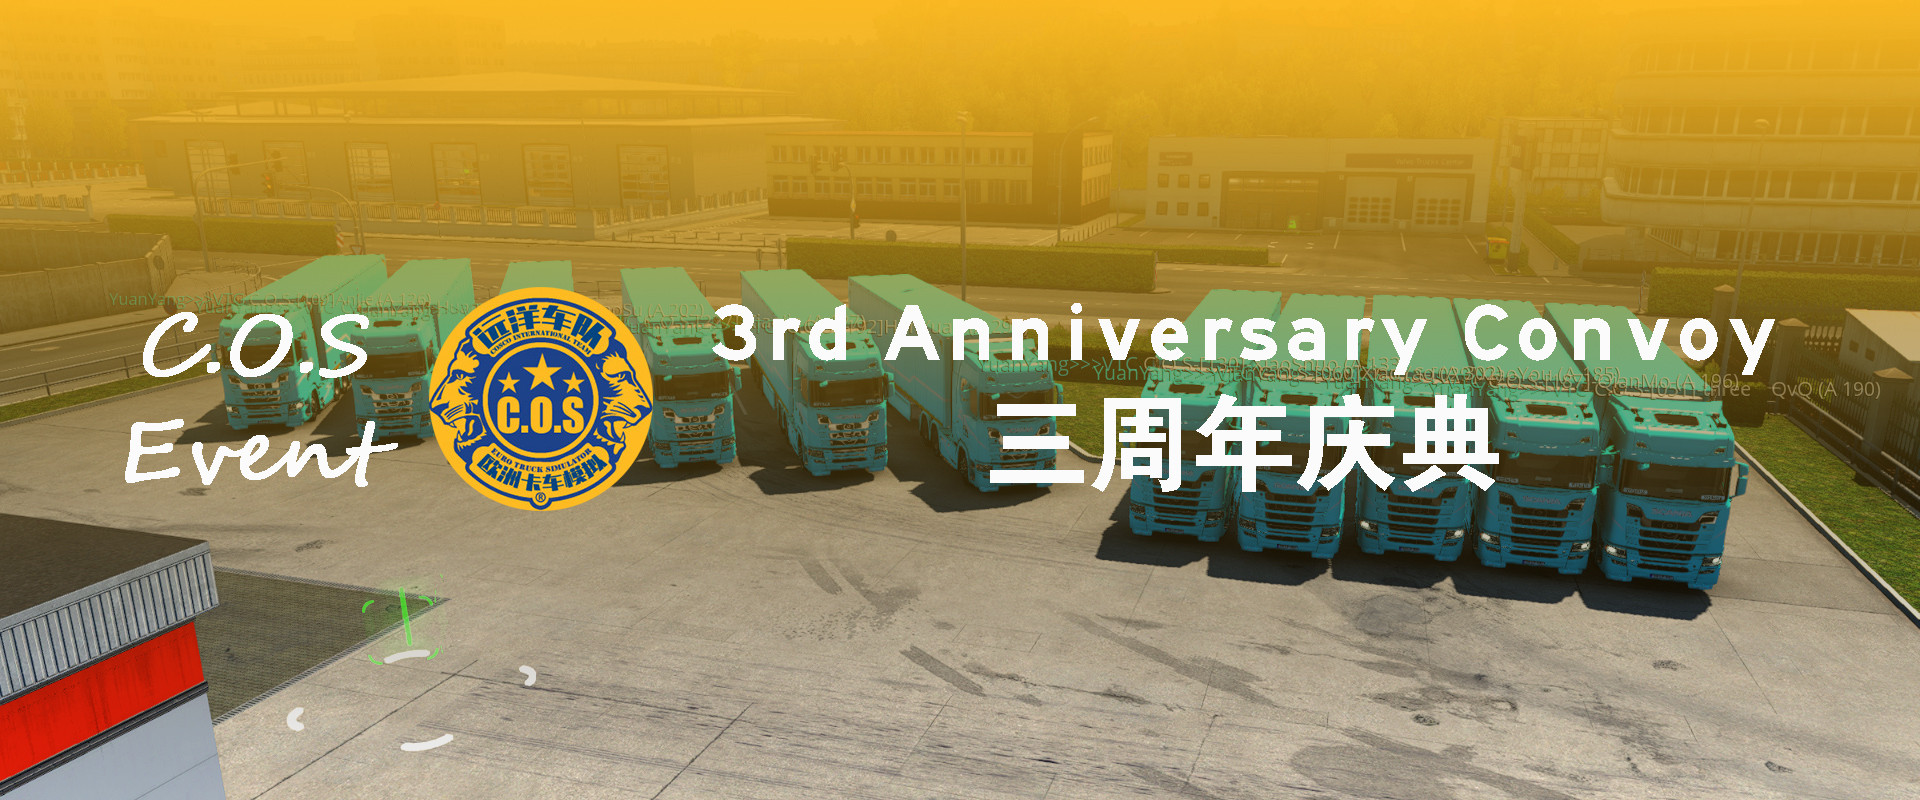 Celebrate the 3rd Anniversary of the Founding of C.O.S Team